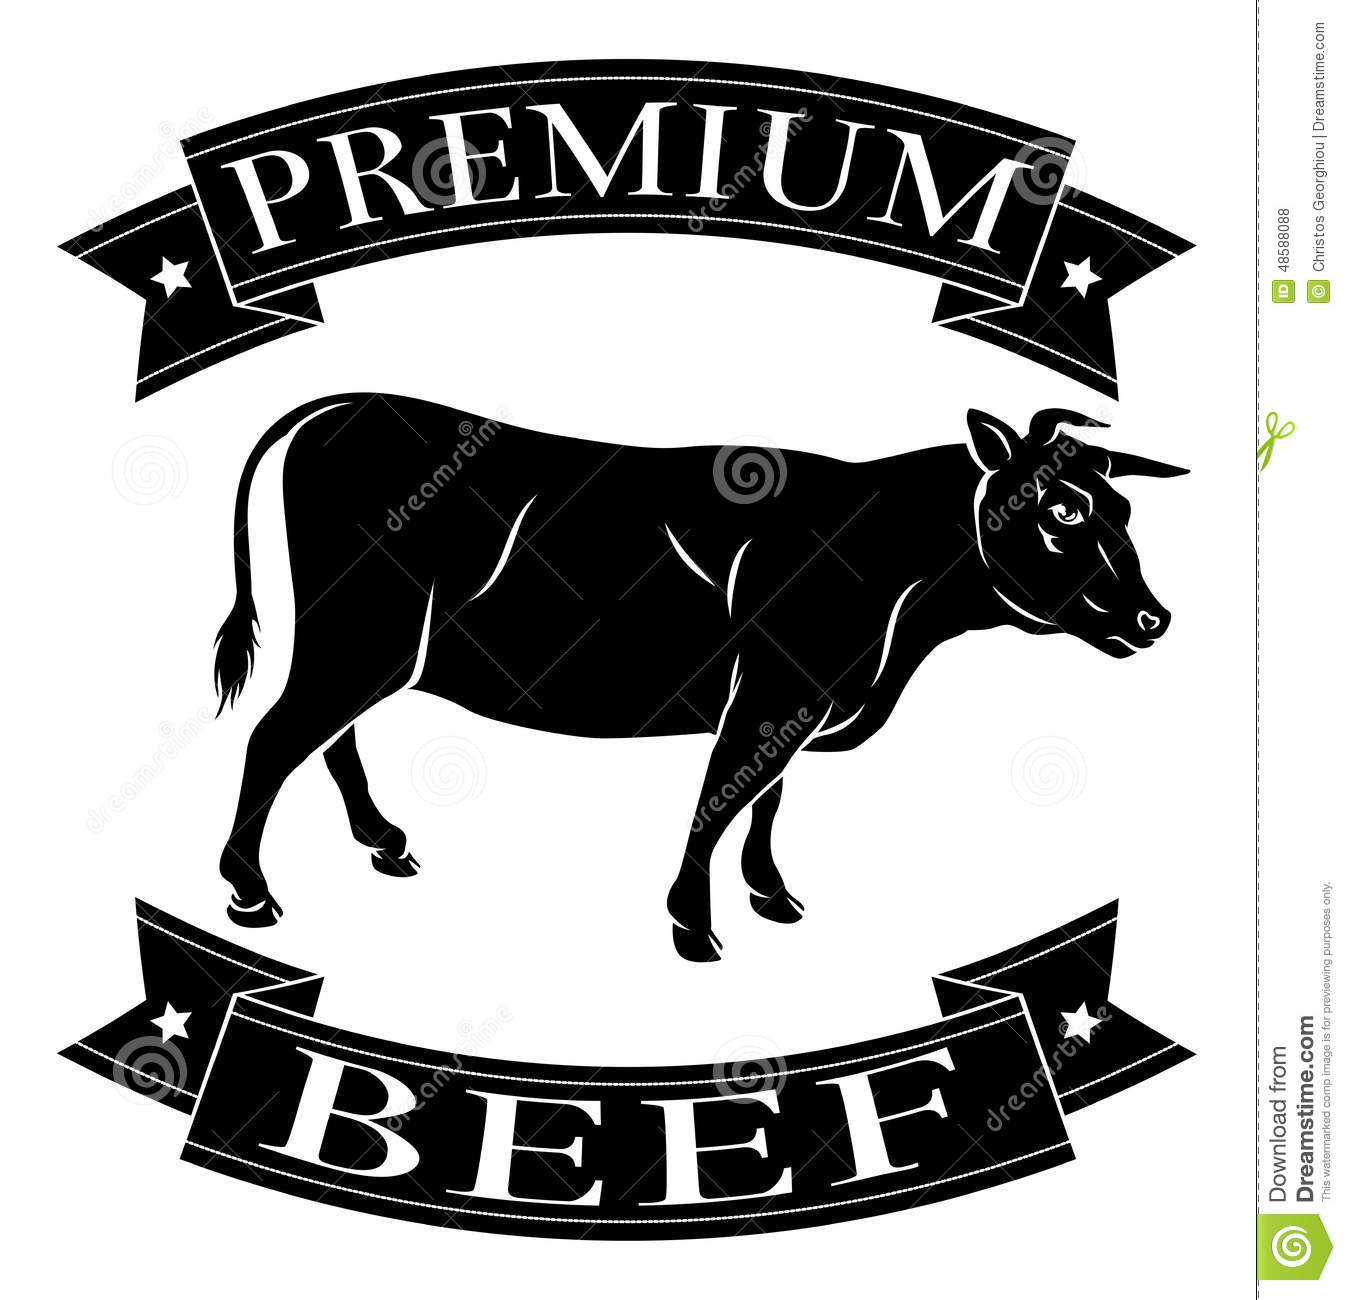 premium beef icon stock vector illustration of packaging